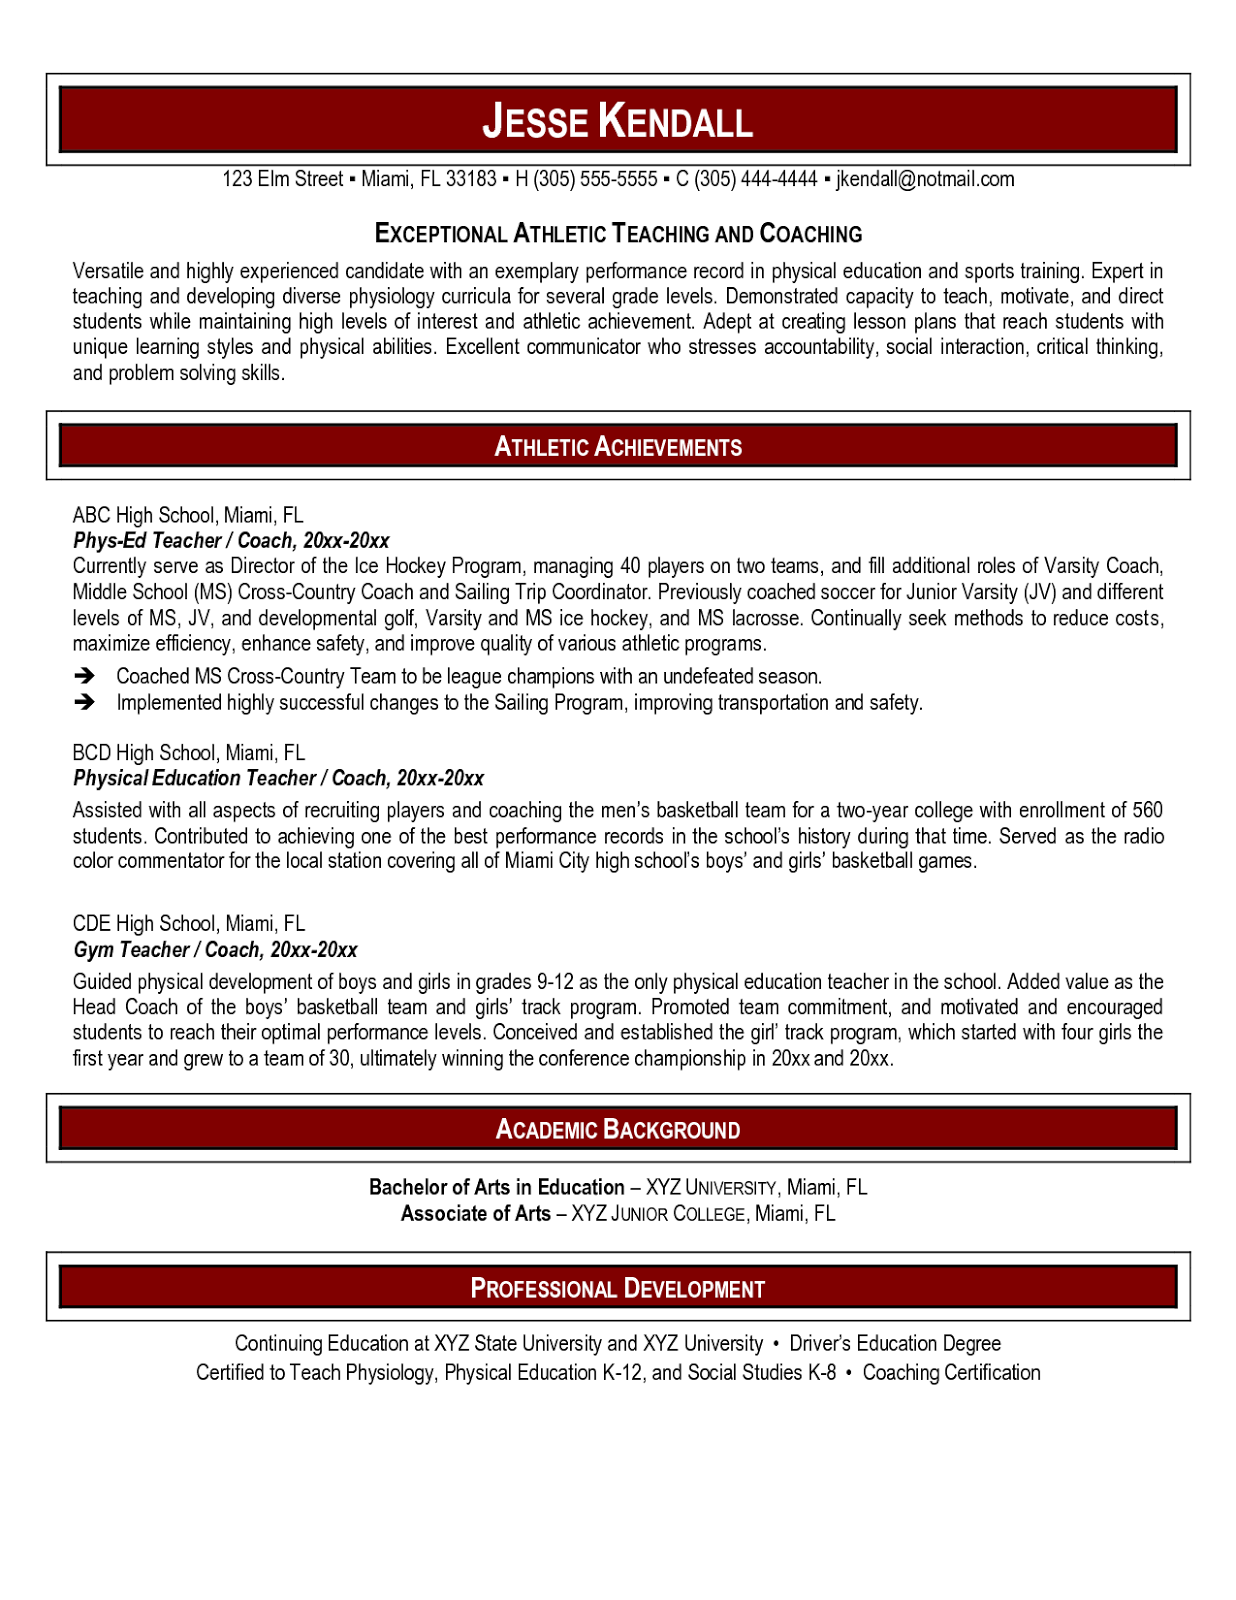 Education Resume Template | Resume Templates | Pinterest | Sample ...